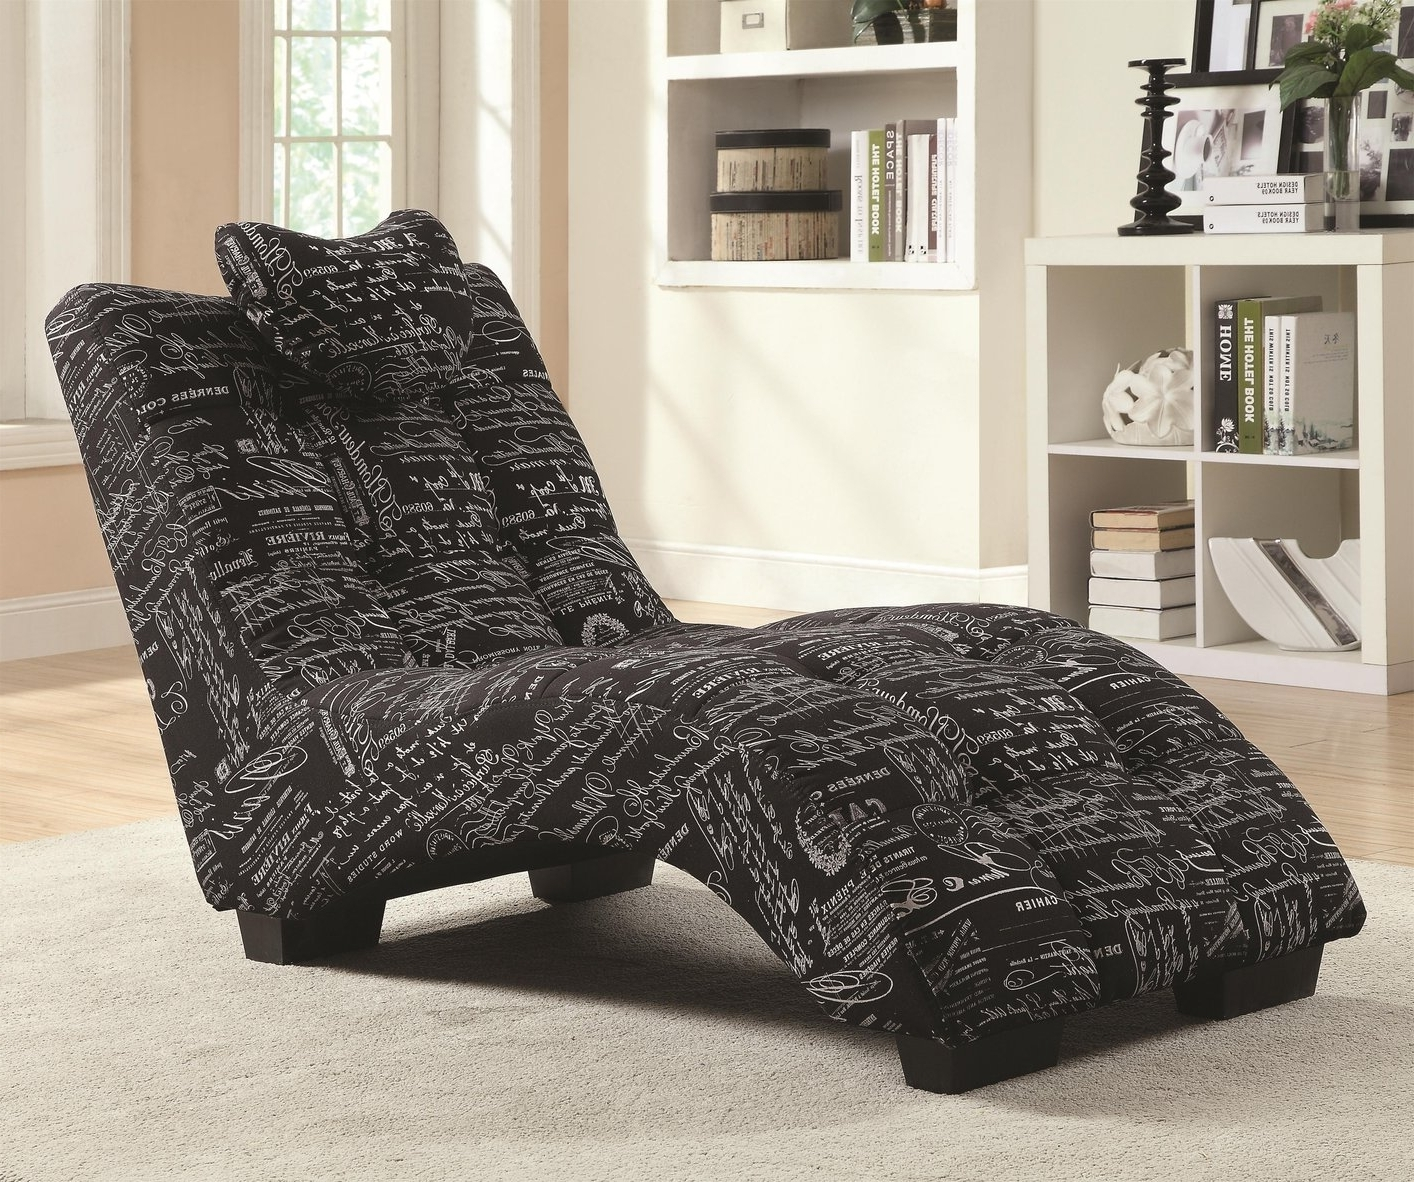 Black Fabric Chaise Lounge – Steal A Sofa Furniture Outlet Los Within 2018 Fabric Chaise Lounge Chairs (View 2 of 15)